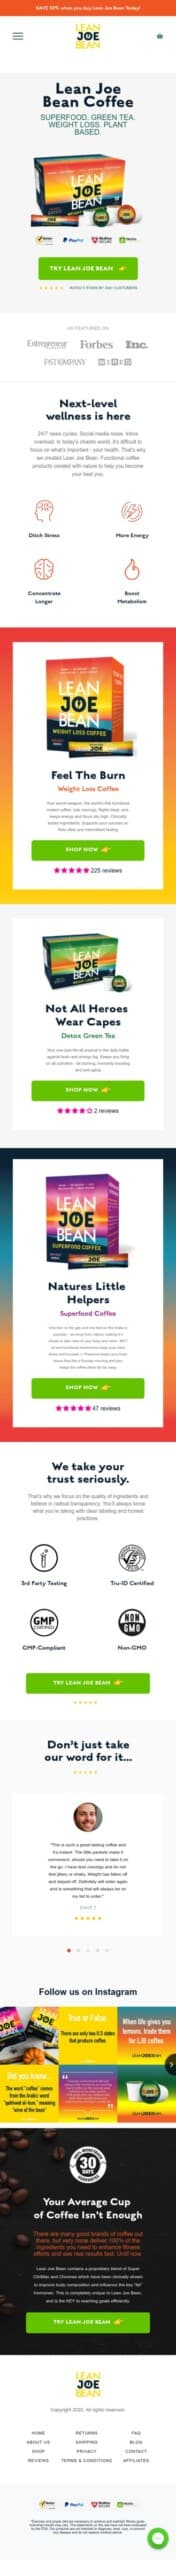 Lean Joe Bean Coupon